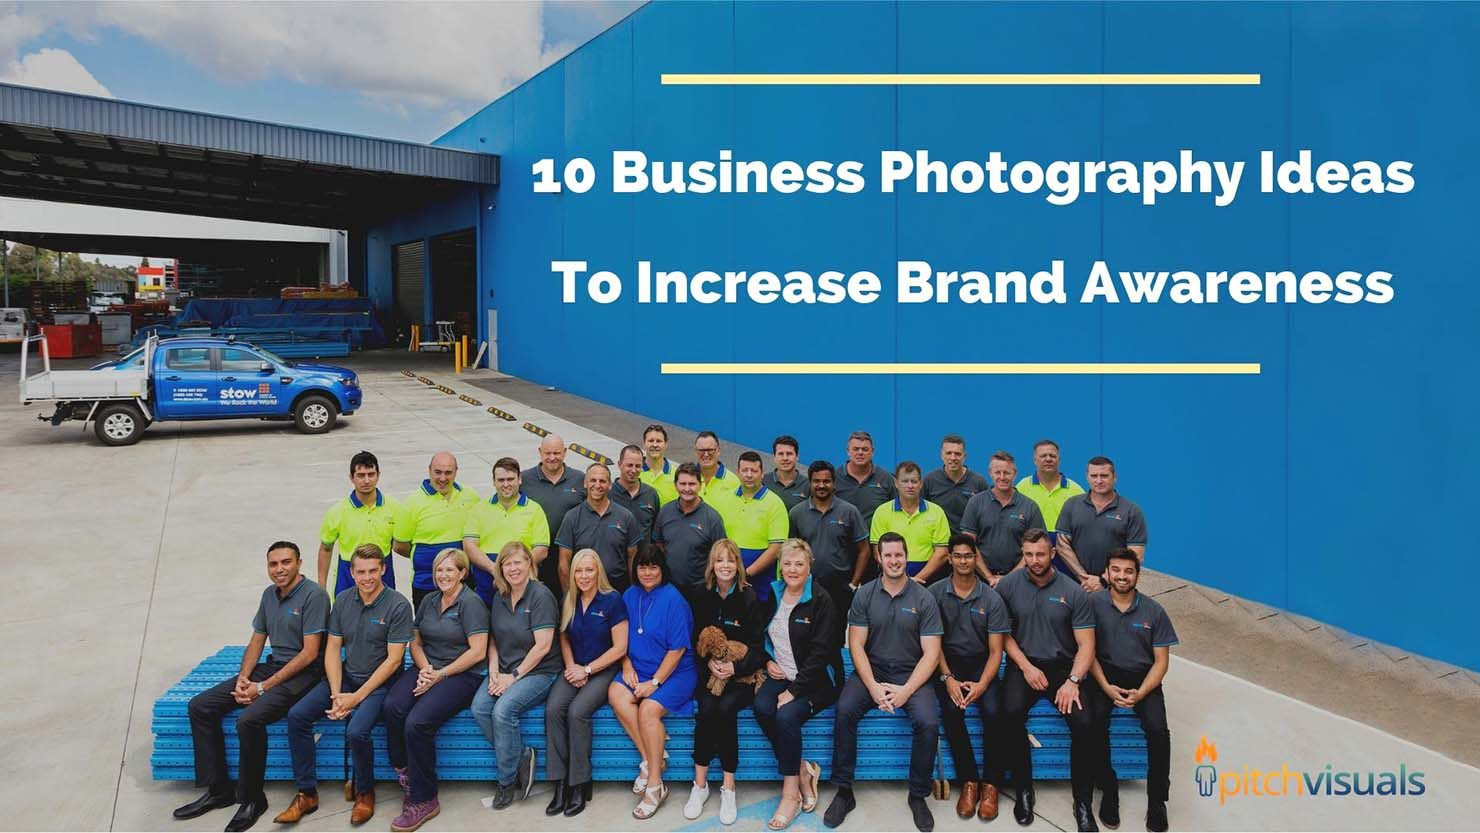 Business Photography To Increase Brand Awareness